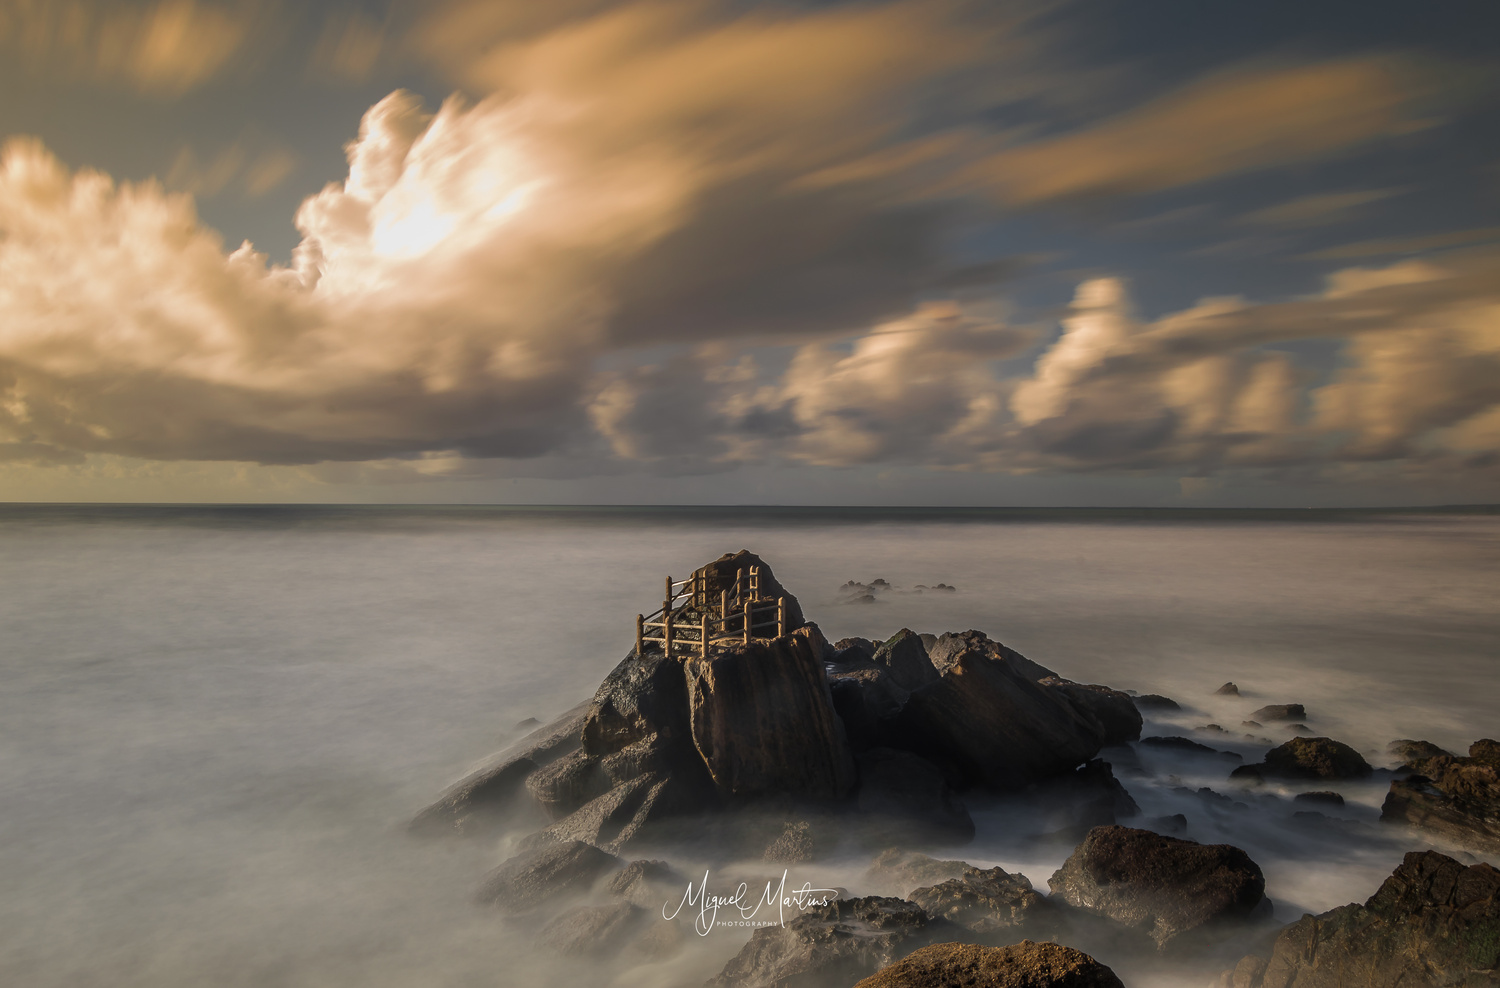 Timeless by Miguel Martins